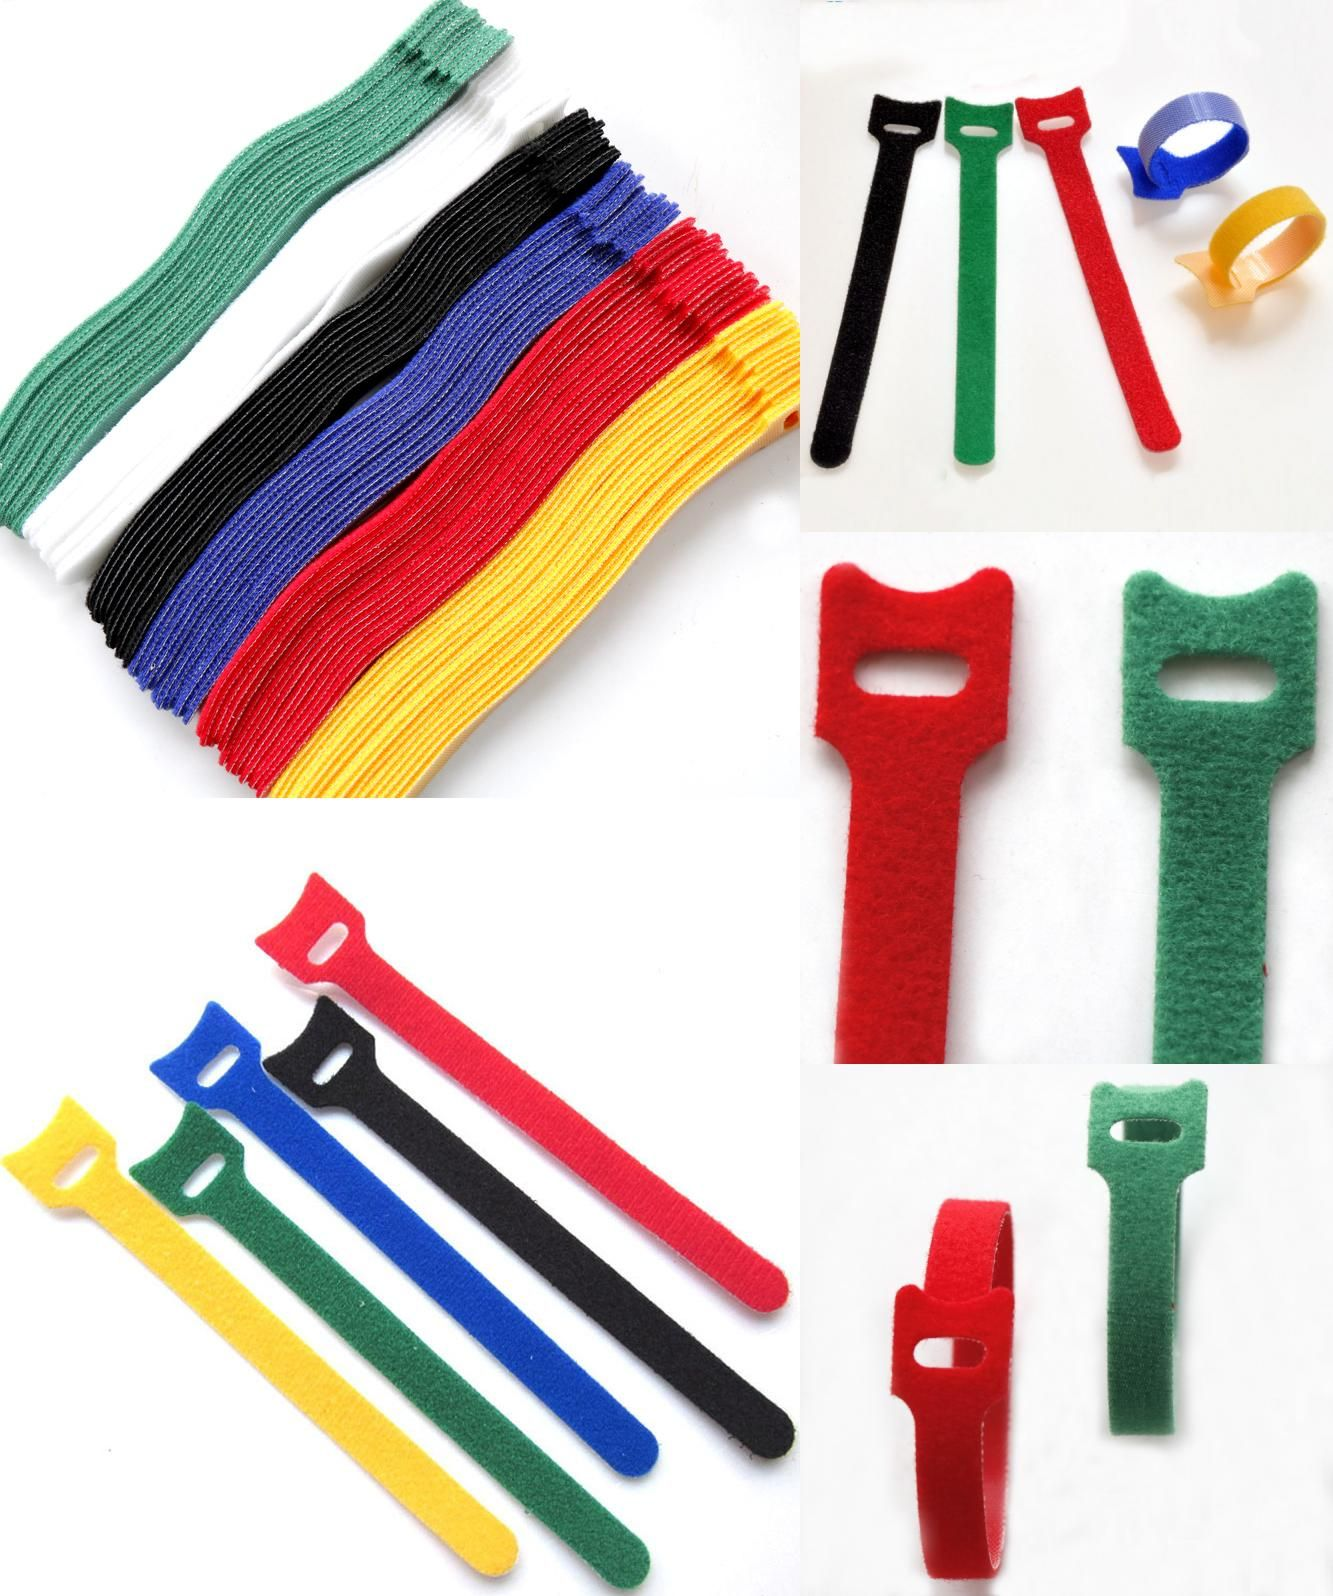 hight resolution of  visit to buy in stock 30pcs lot 12mmx200mm cable ties nylon strap power wire management marker straps wiring harness free shipping advertisement